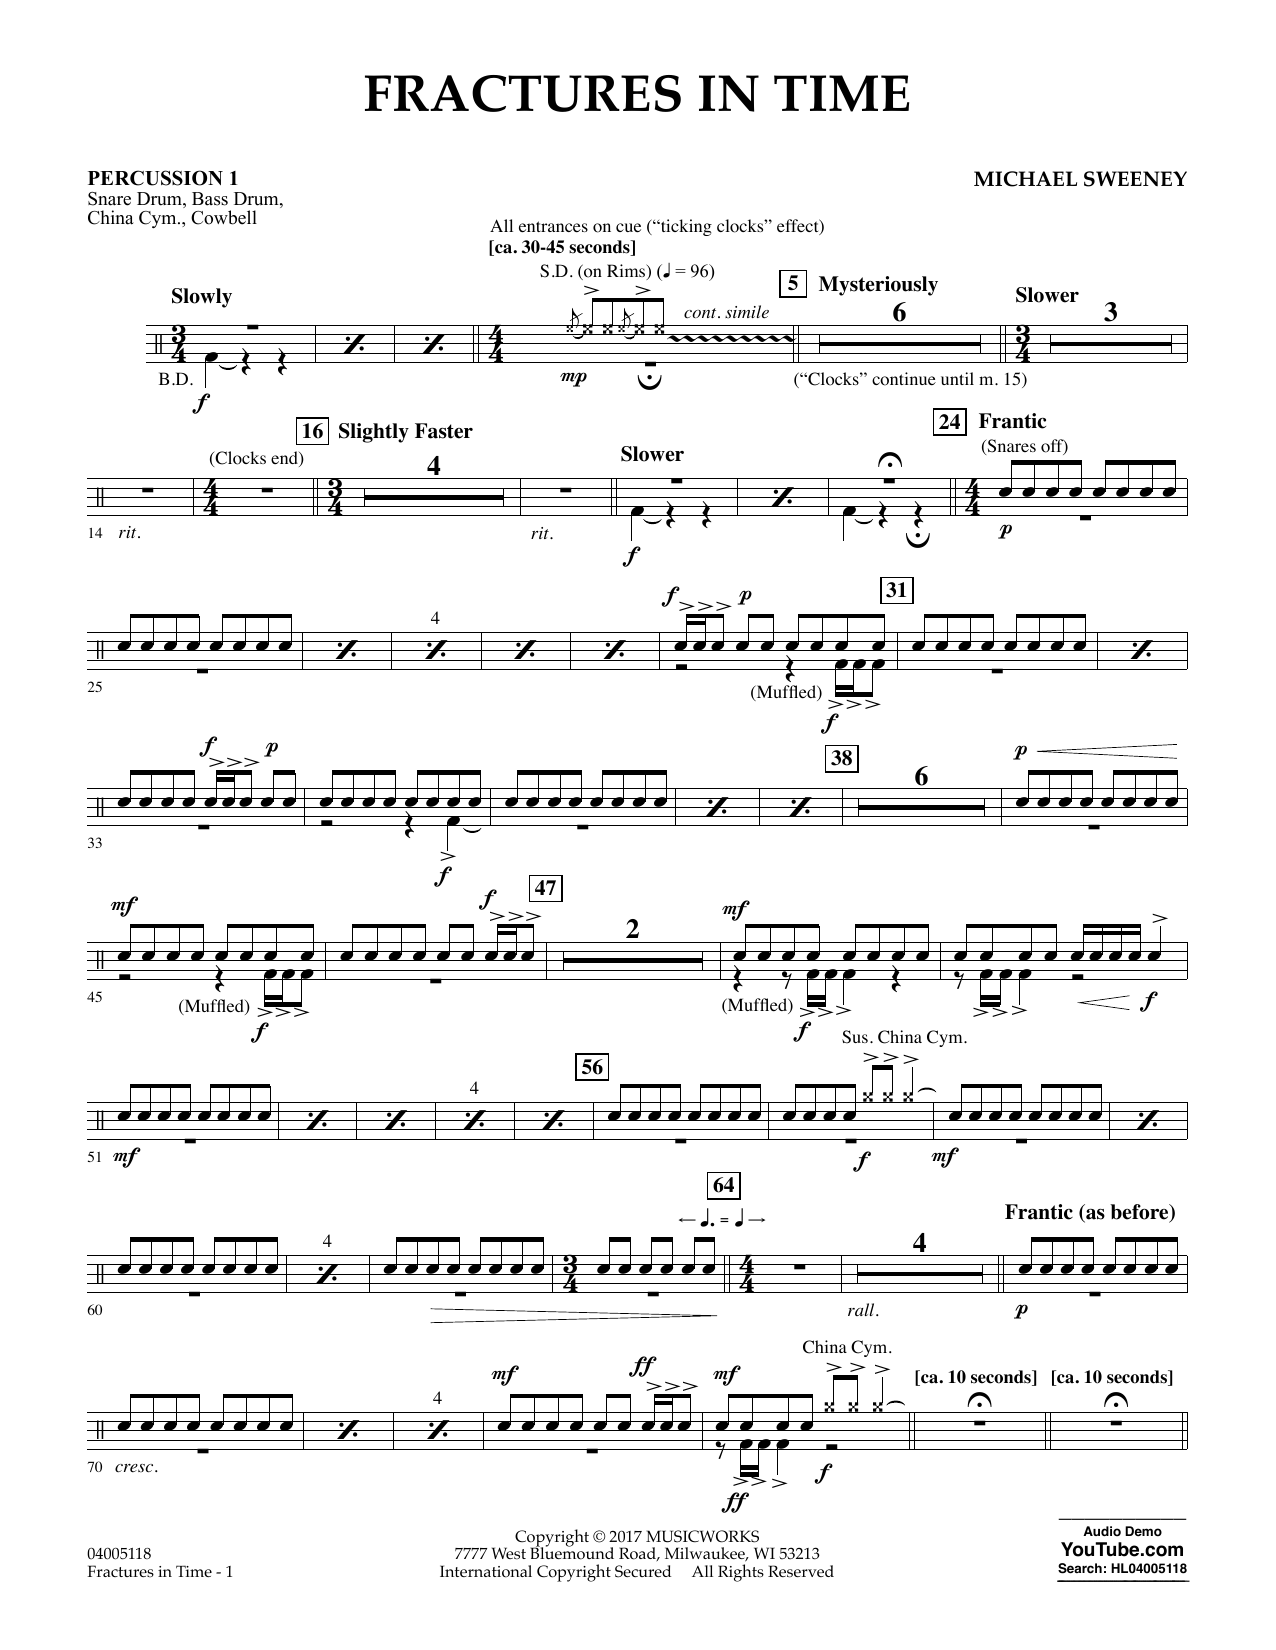 Fractures in Time - Percussion 1 Sheet Music